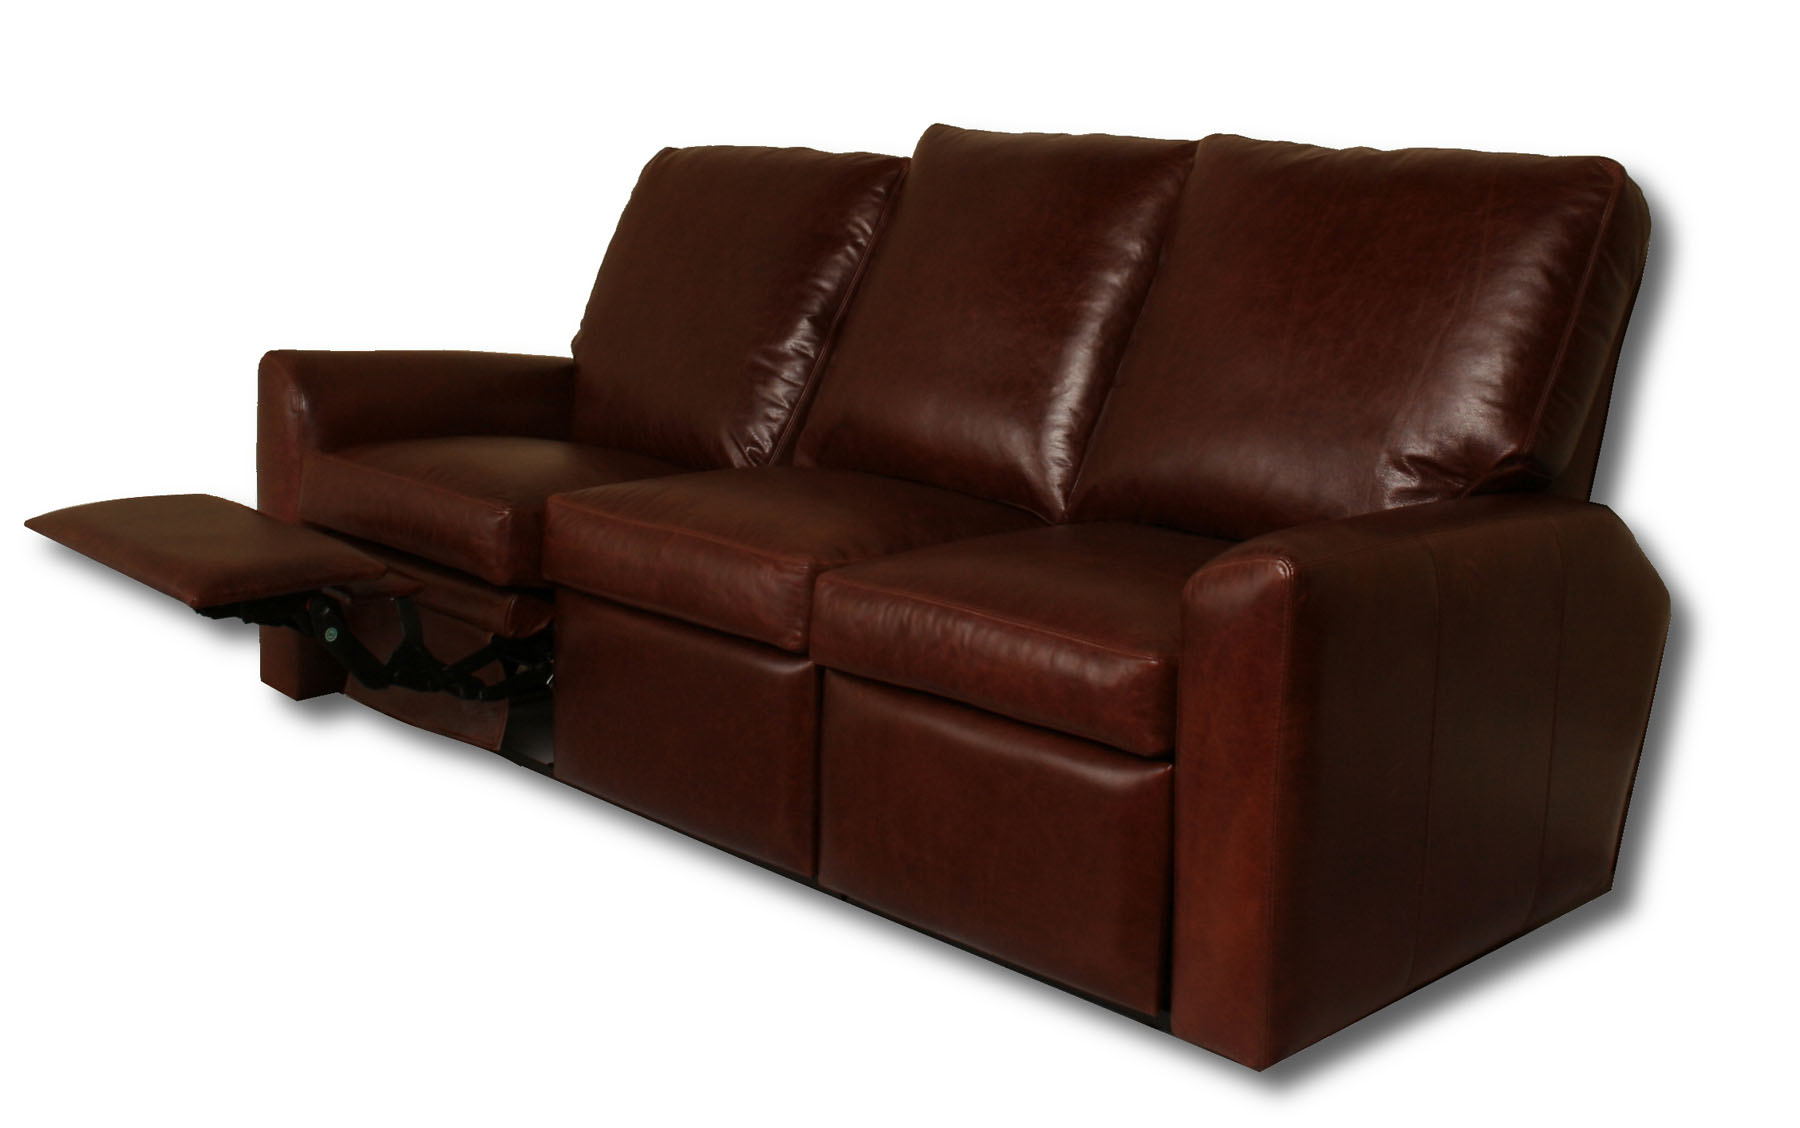 Unique Addison - Reclining Leather Sofa reclining leather sofa